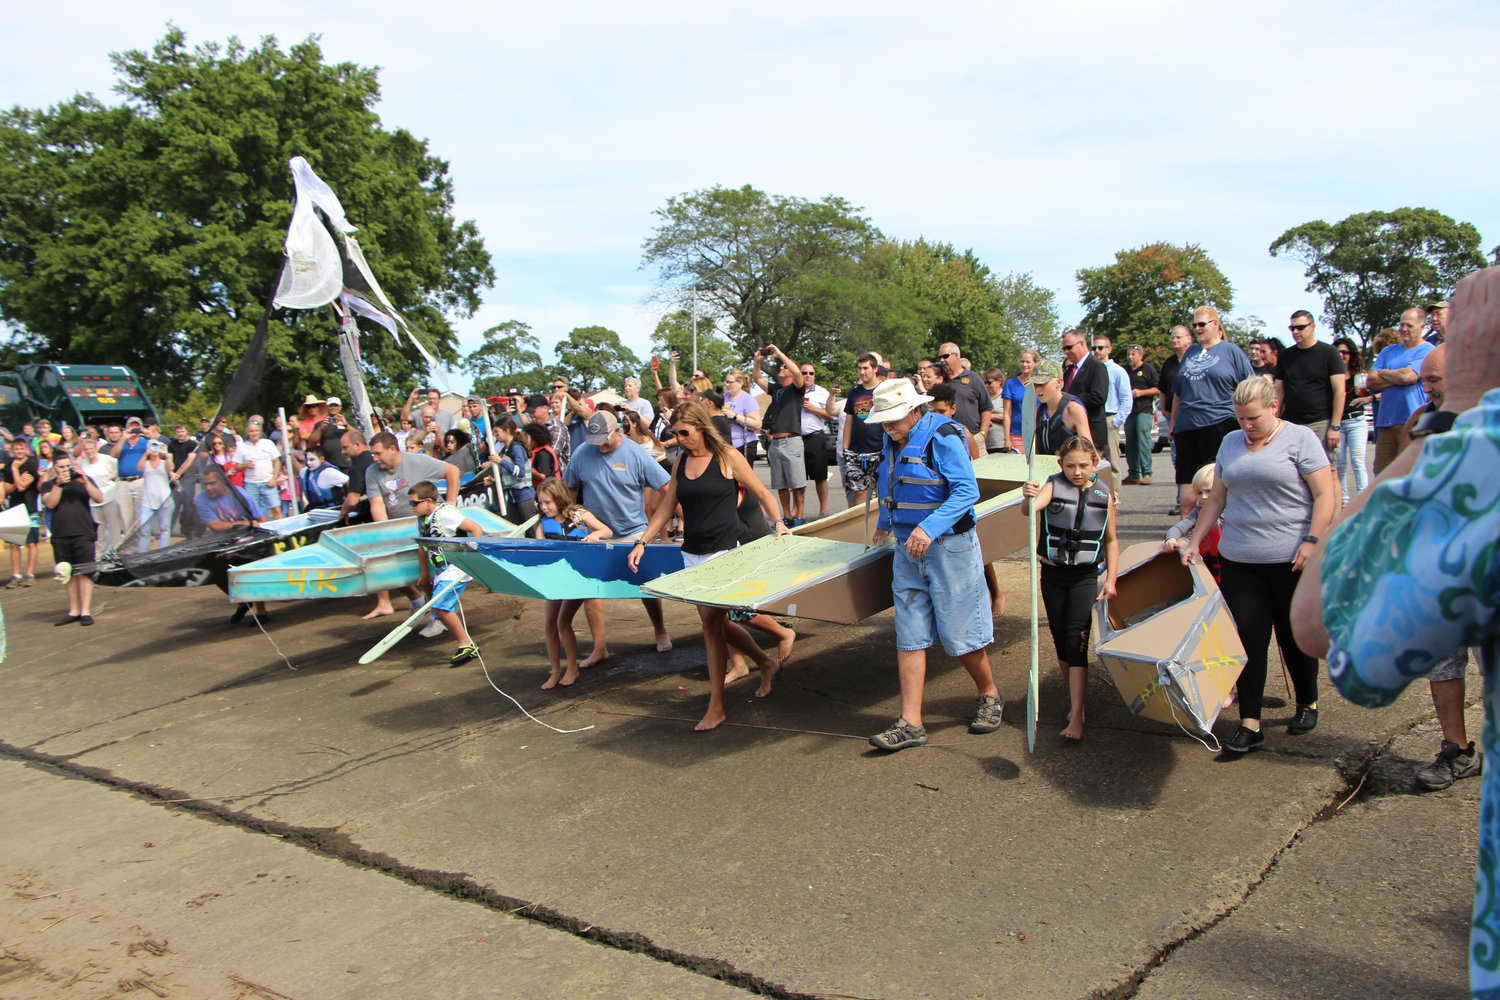 Participants set up their boats for the start of the children's race.